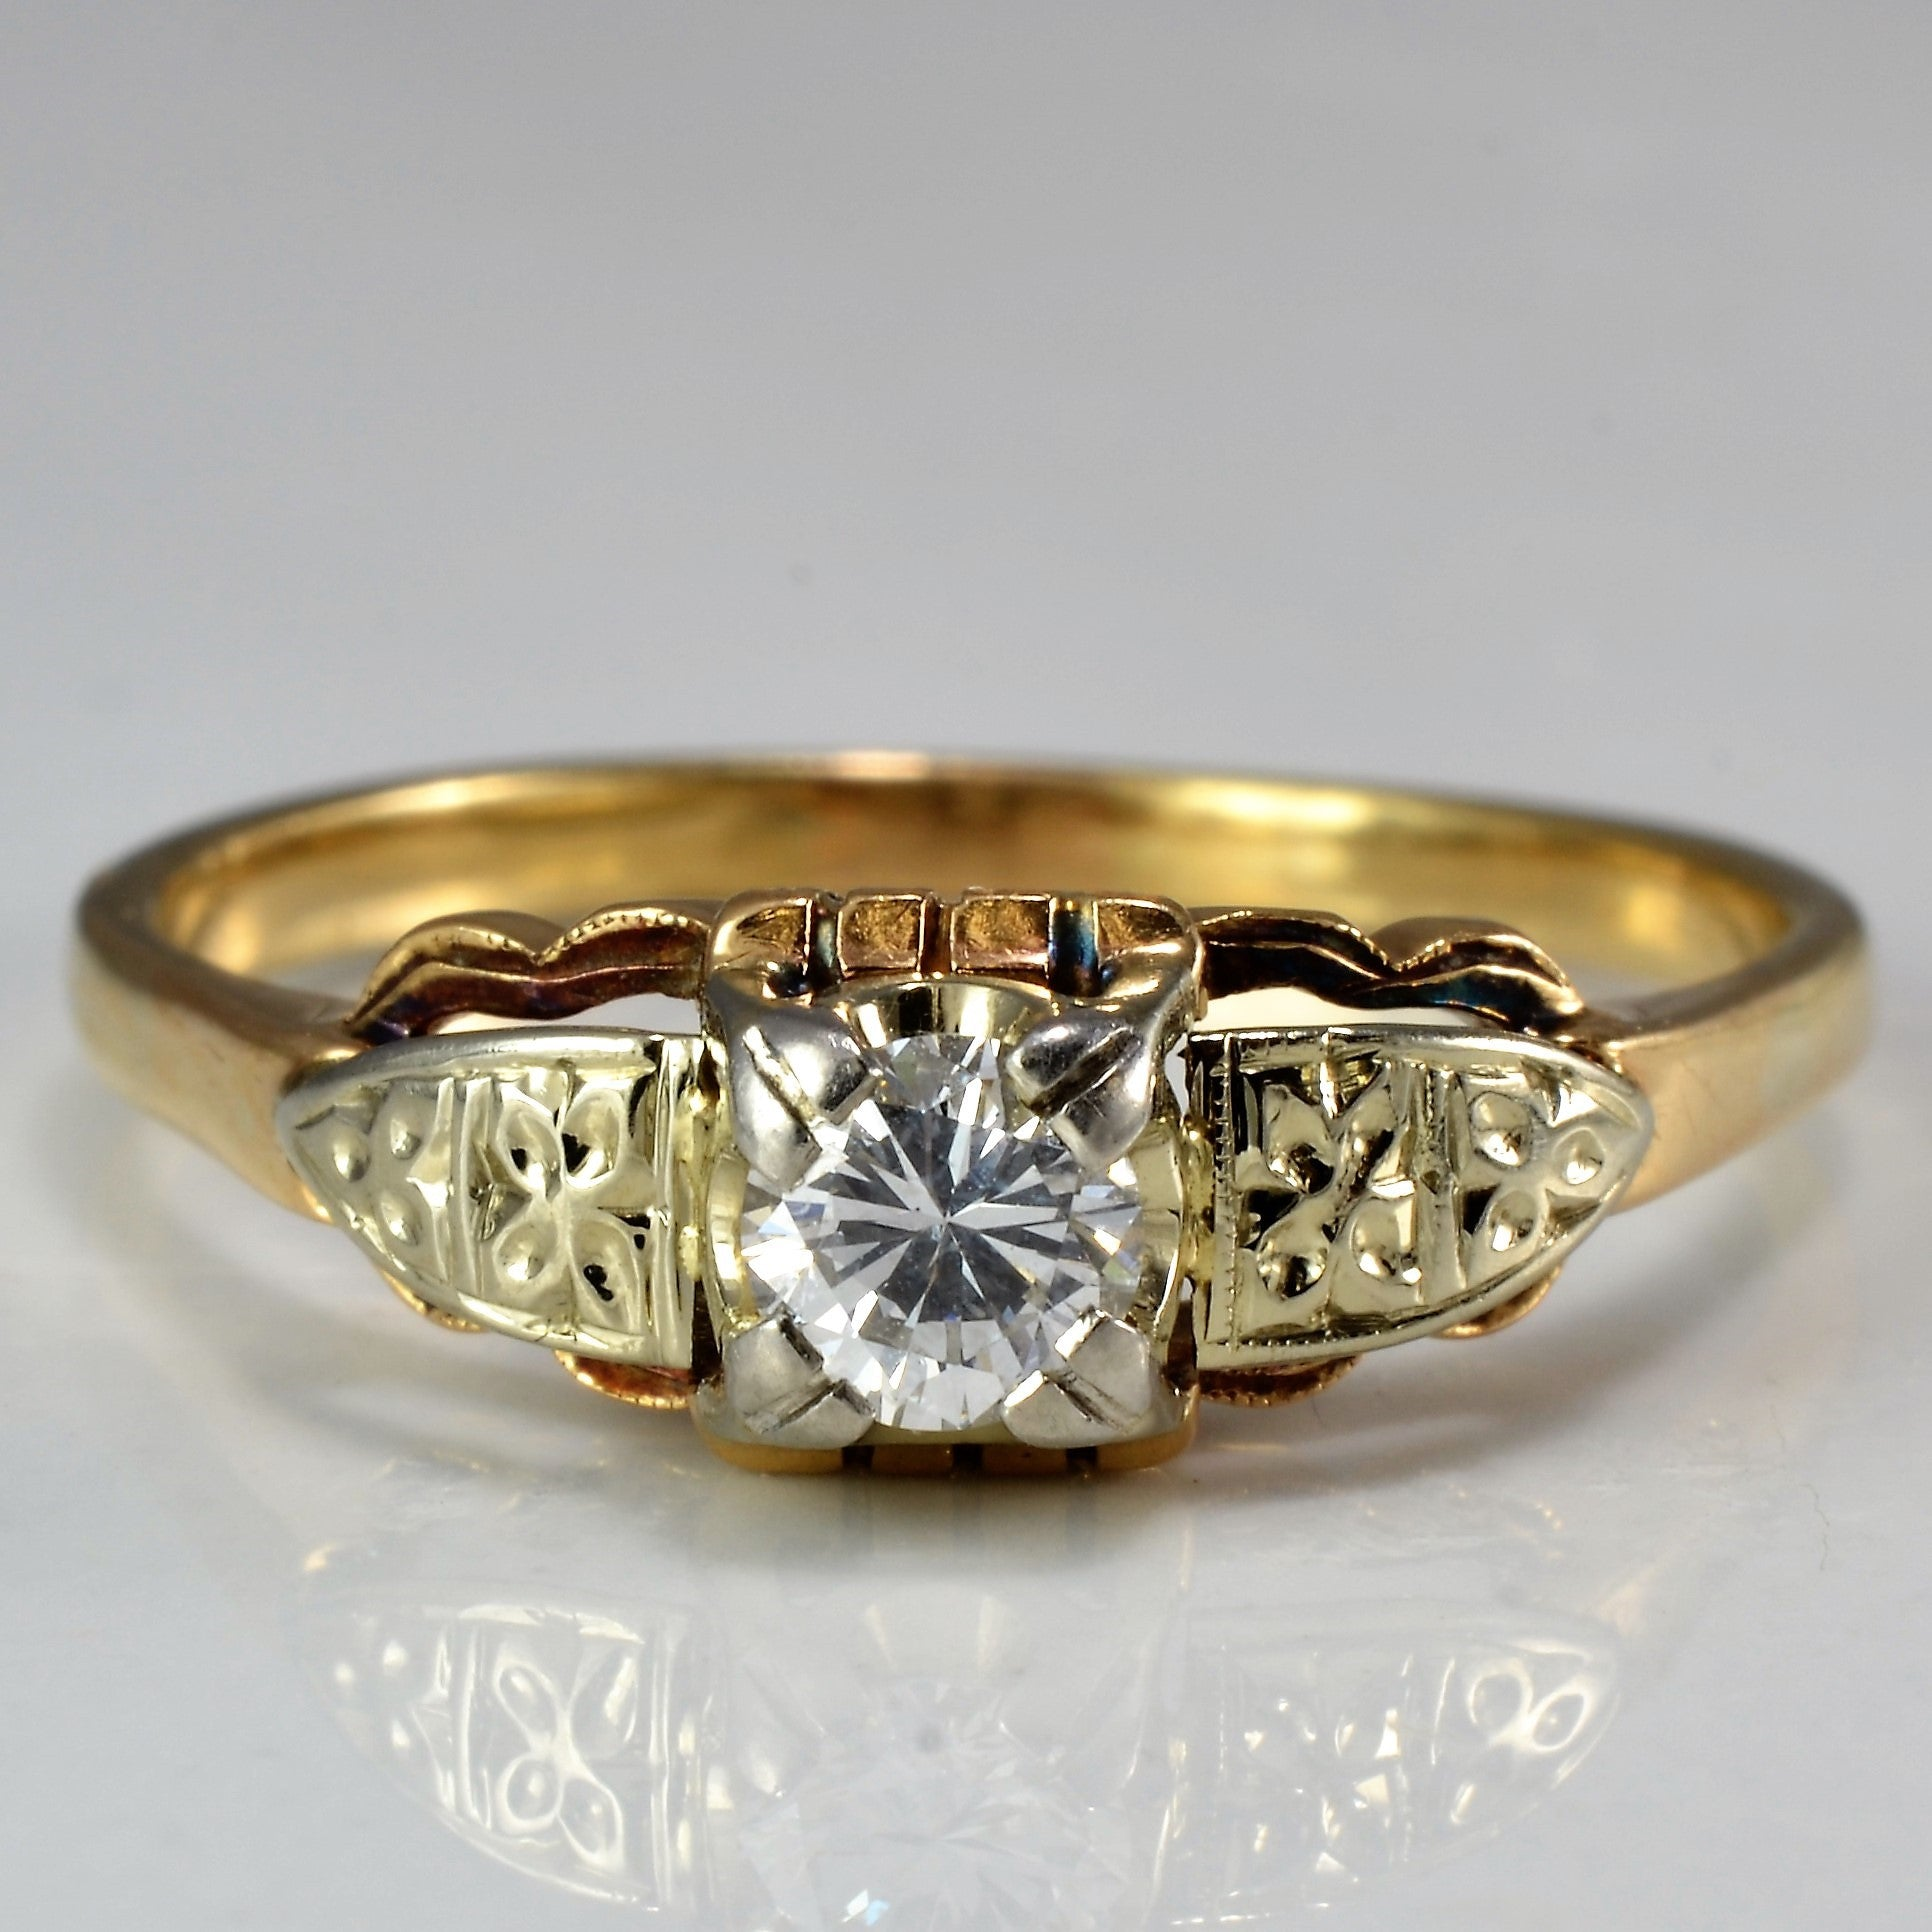 Petite Engagement Ring Circa 1930's | 0.23 ct, SZ 9.25 |